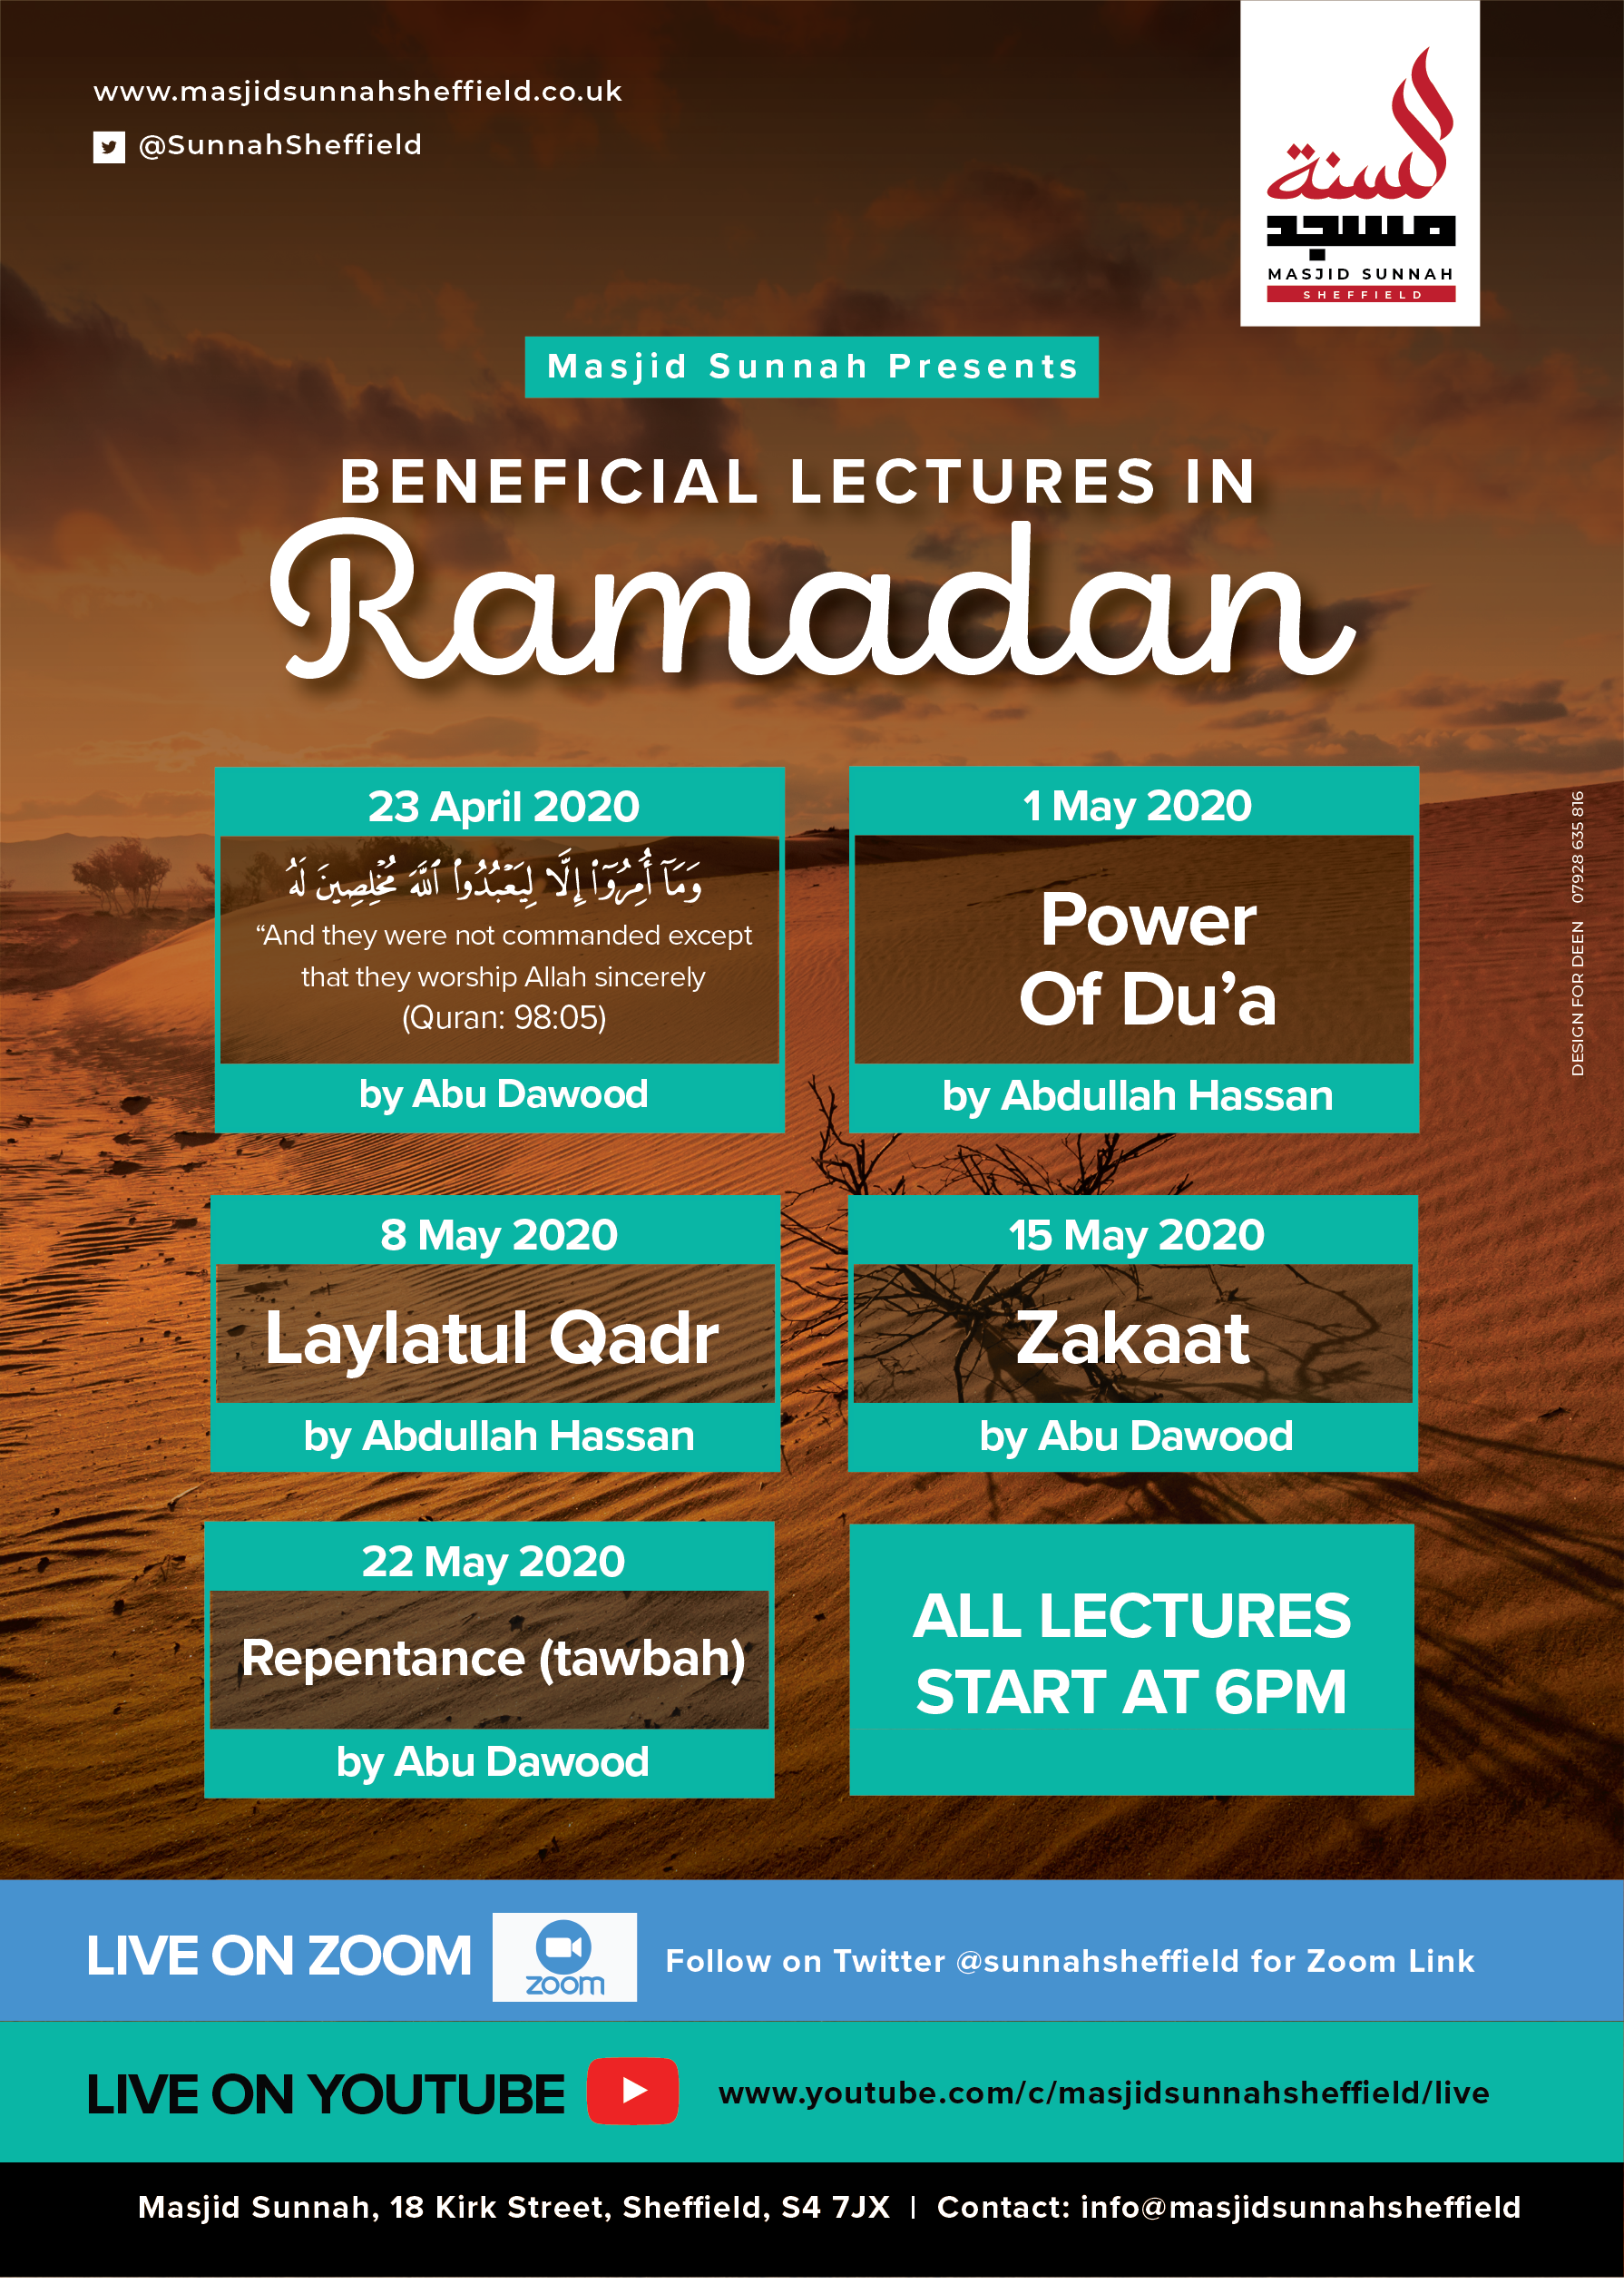 Beneficial Lectures in Ramadan